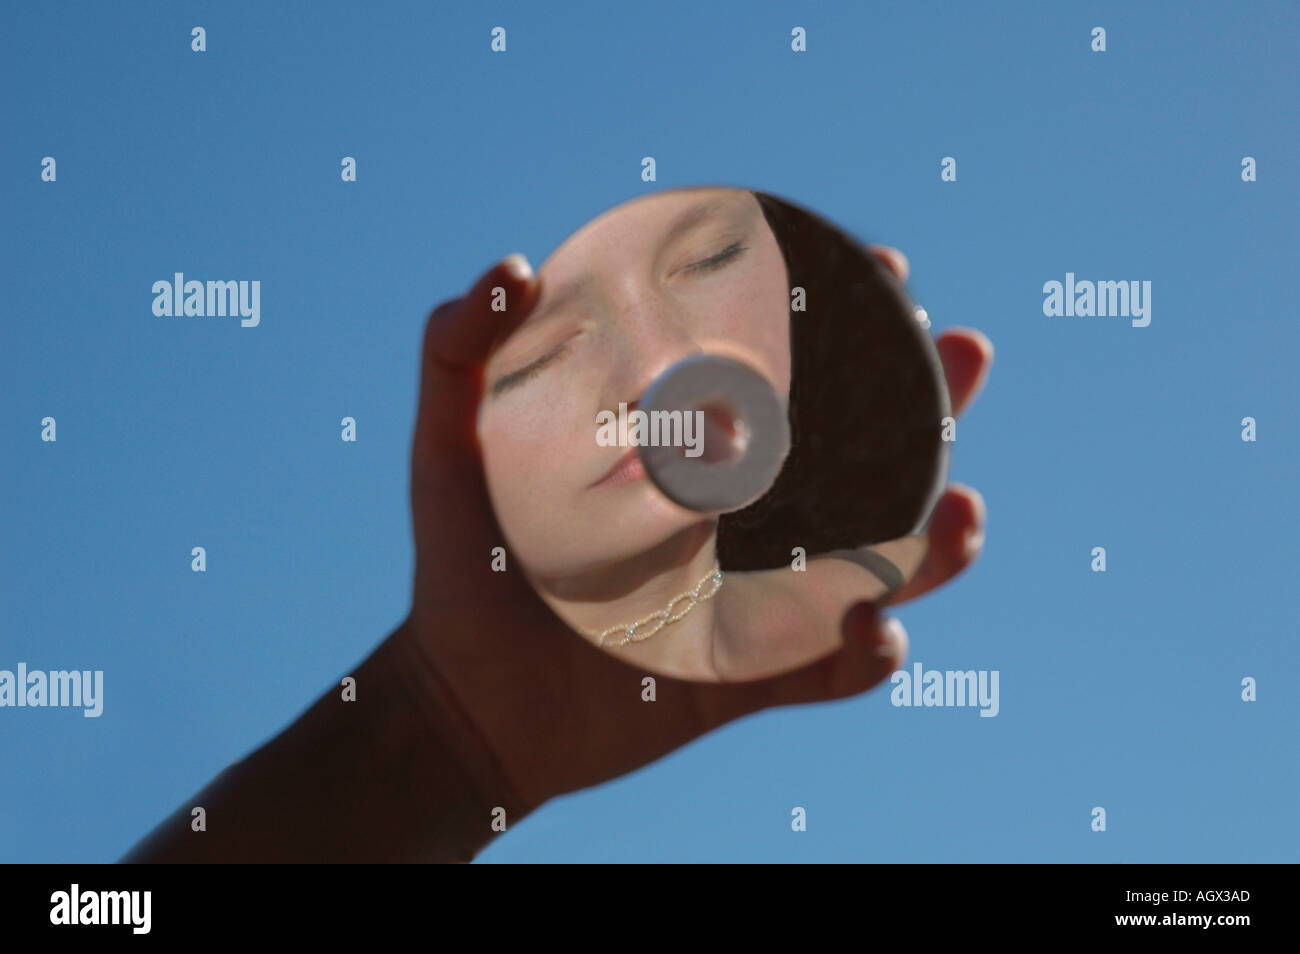 MR cd reflects woman s face - Stock Image